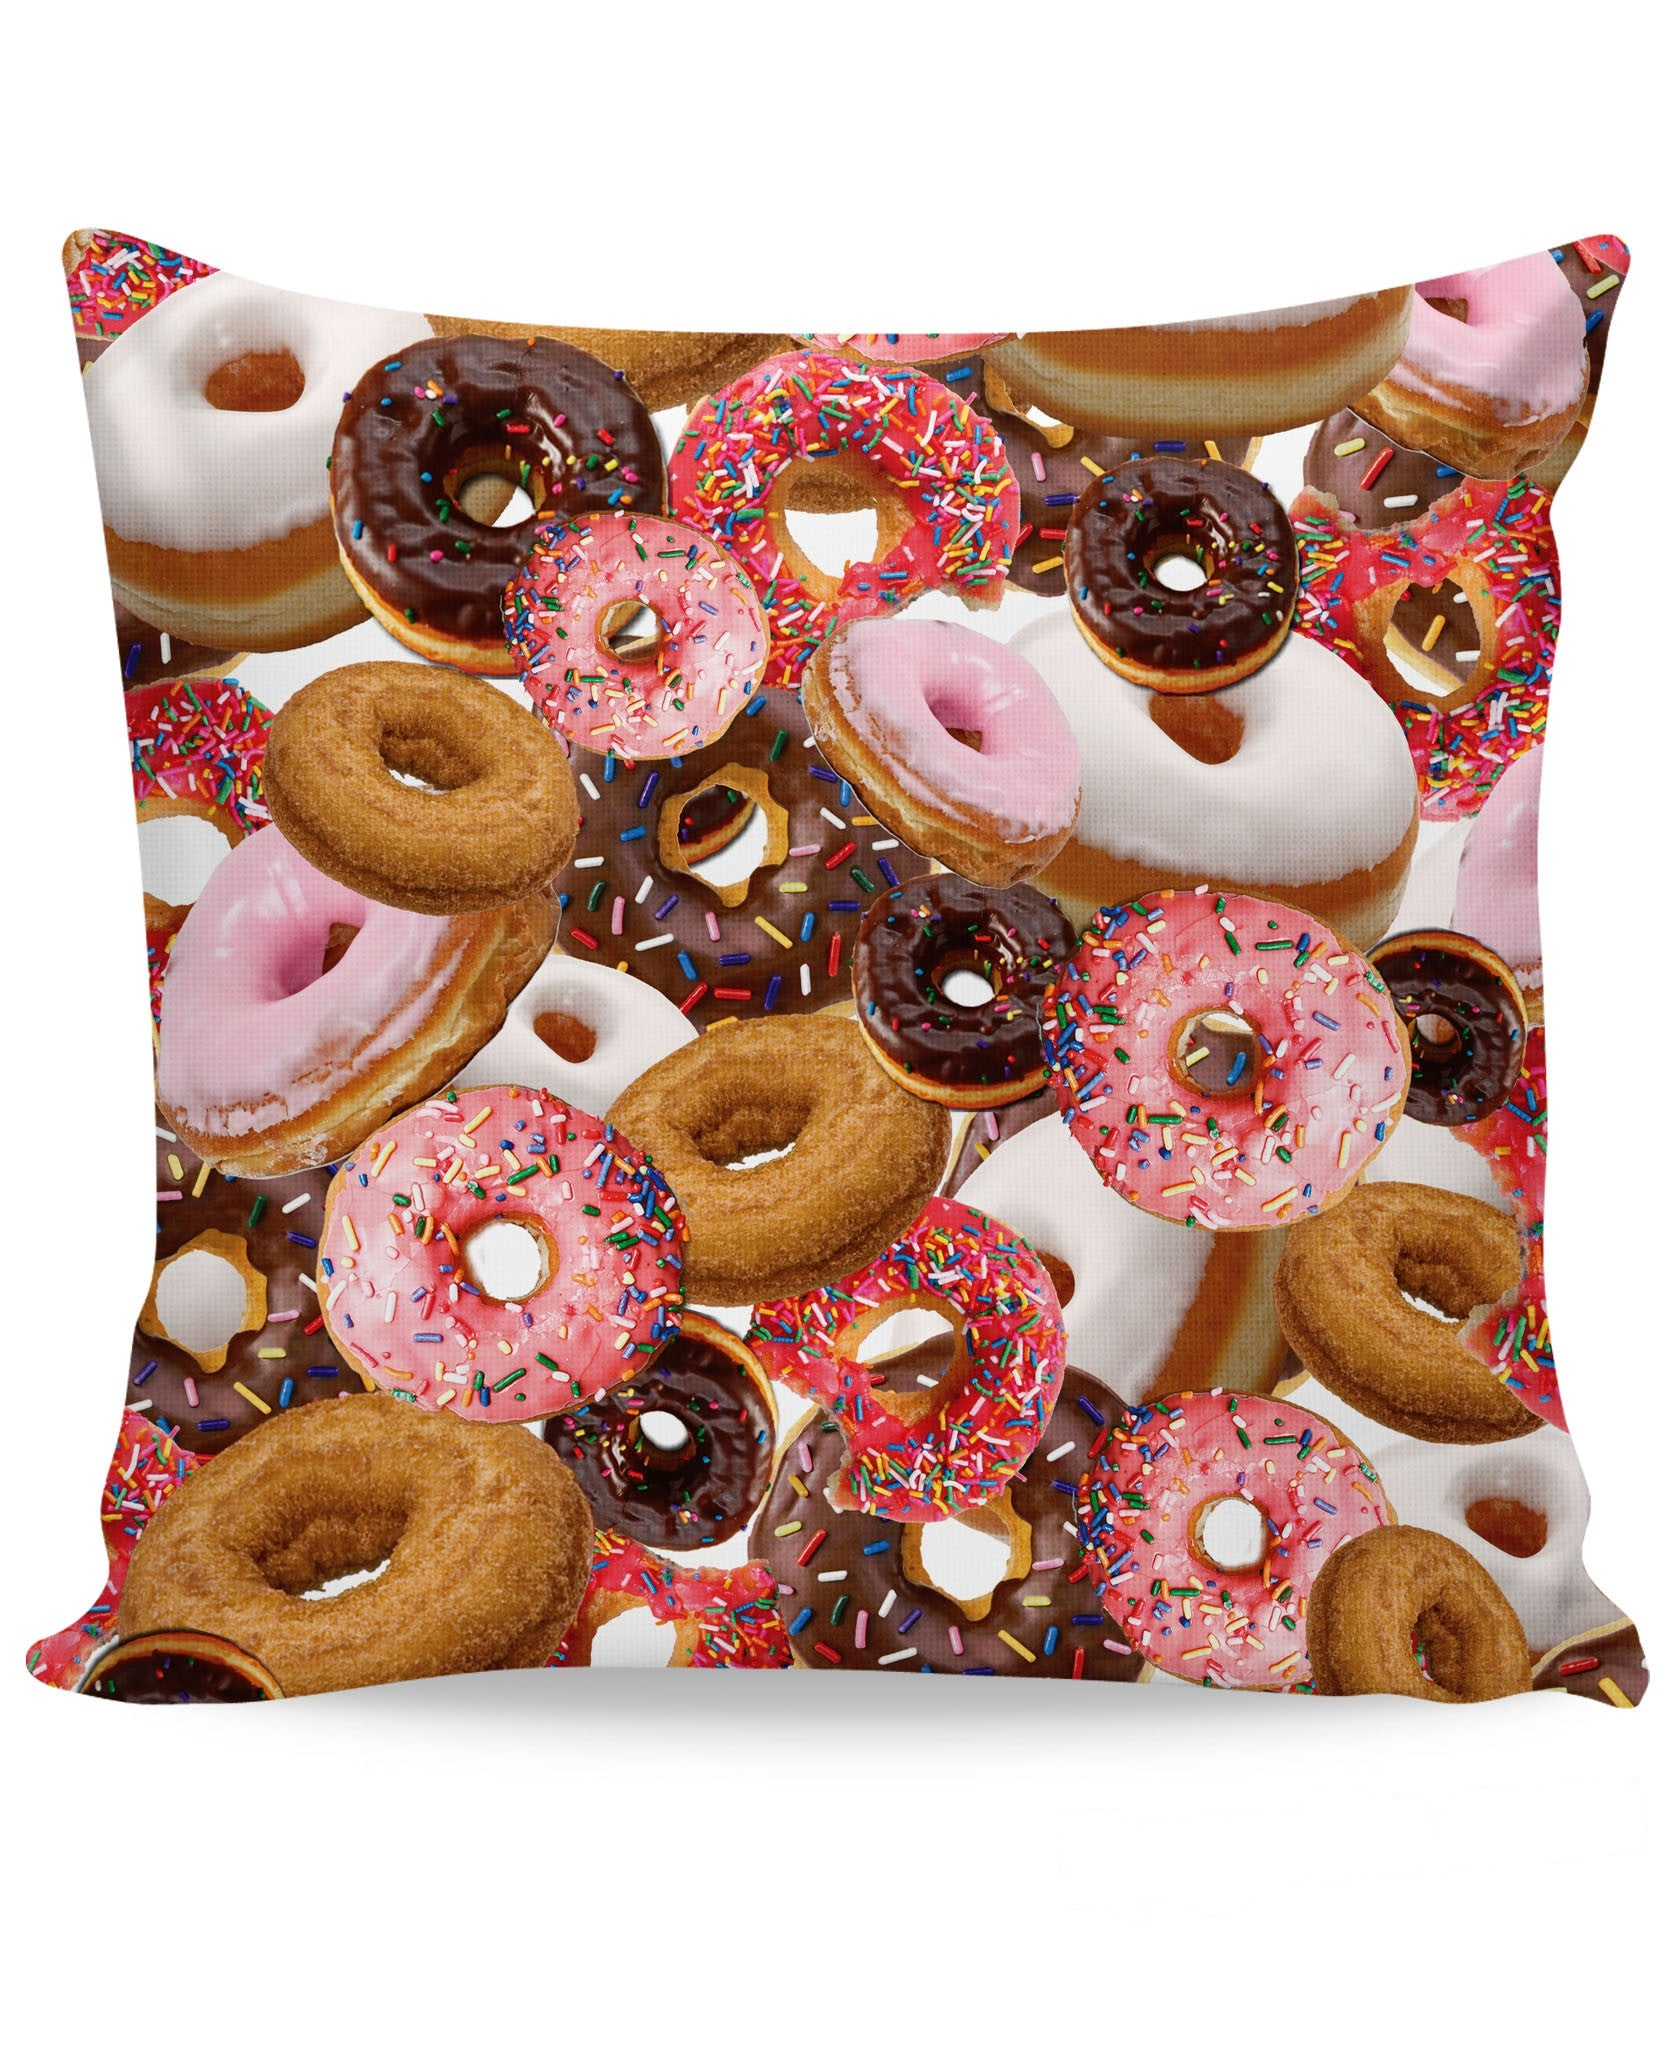 Donuts Couch Pillow